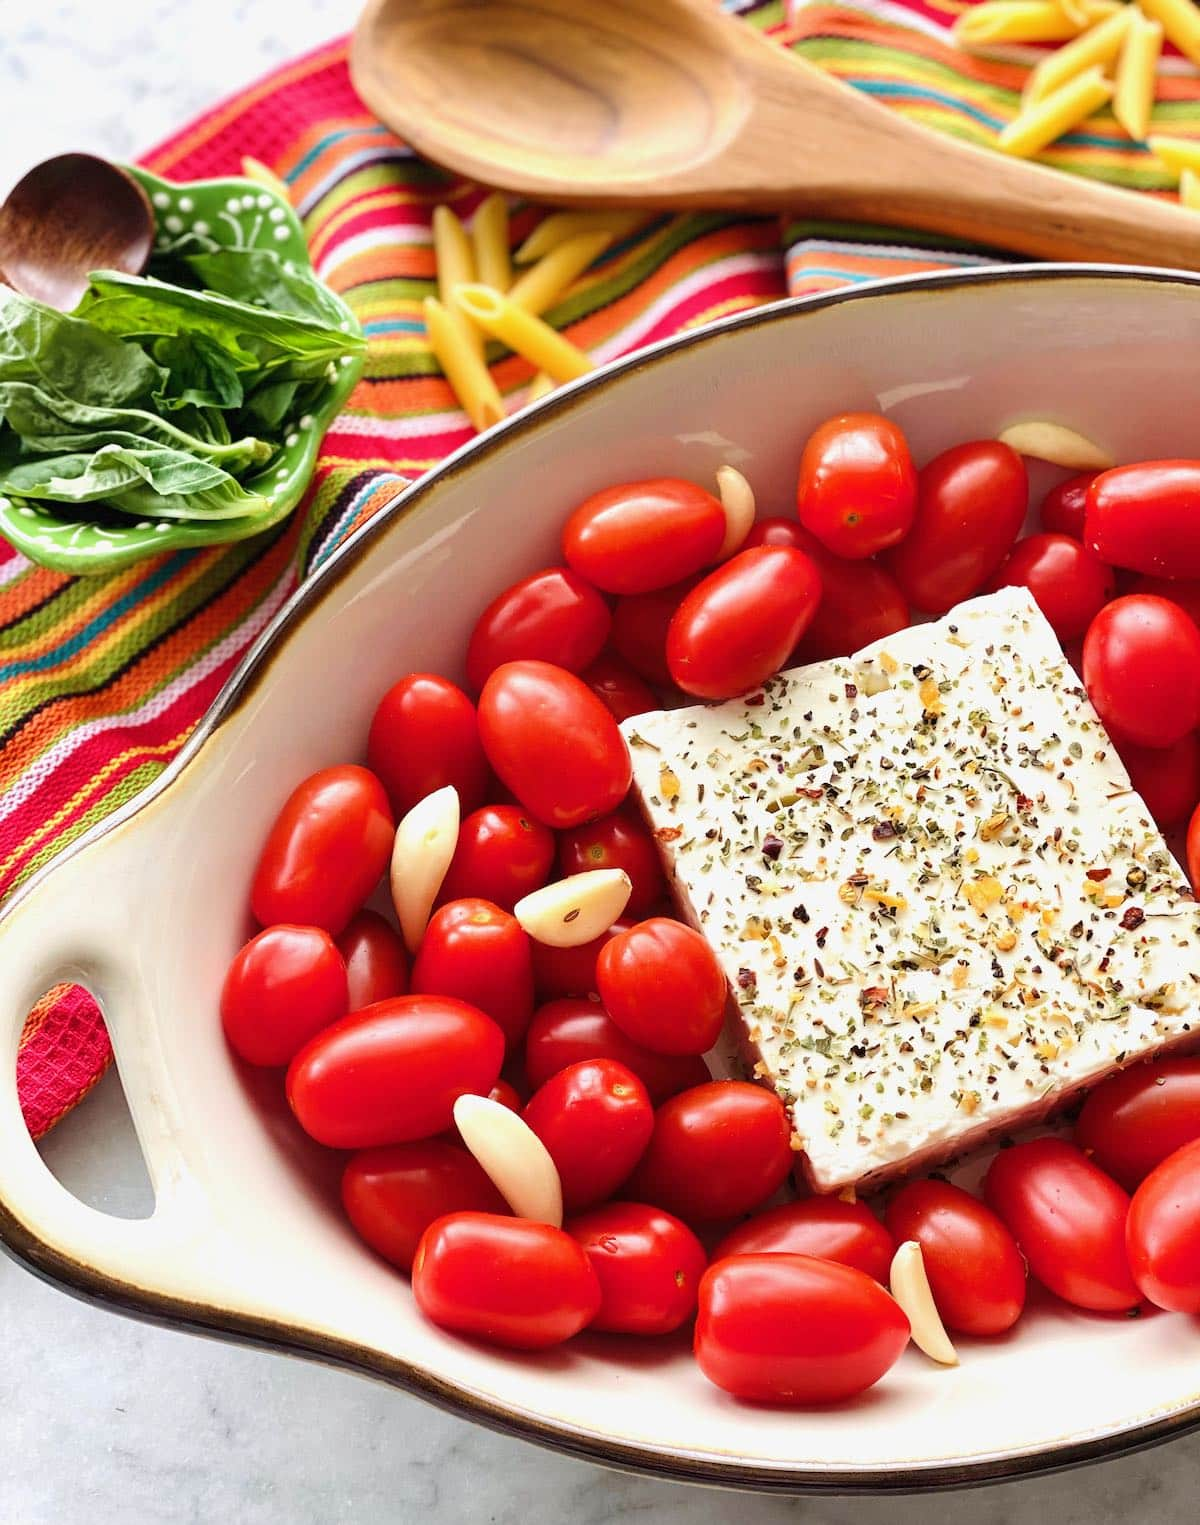 garlic cloves tucked into tomatoes surrounding feta cheese.